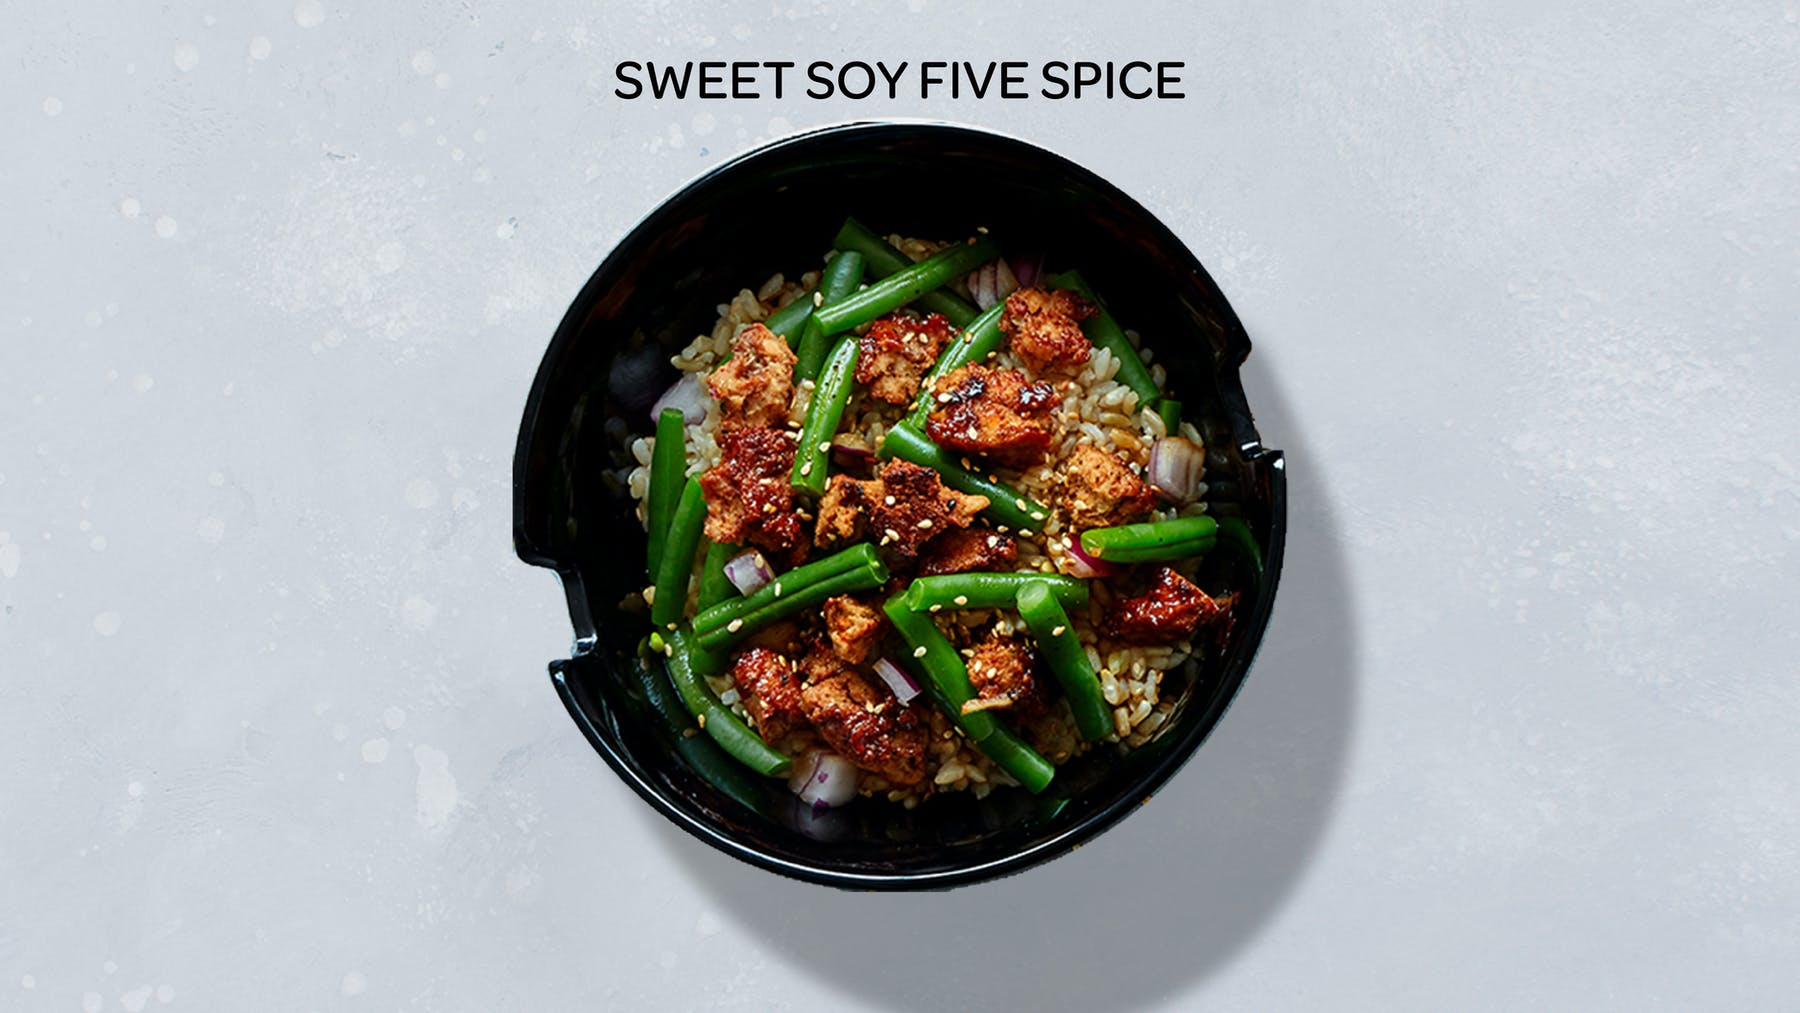 a bowl of sweet soy five spice stir-fry